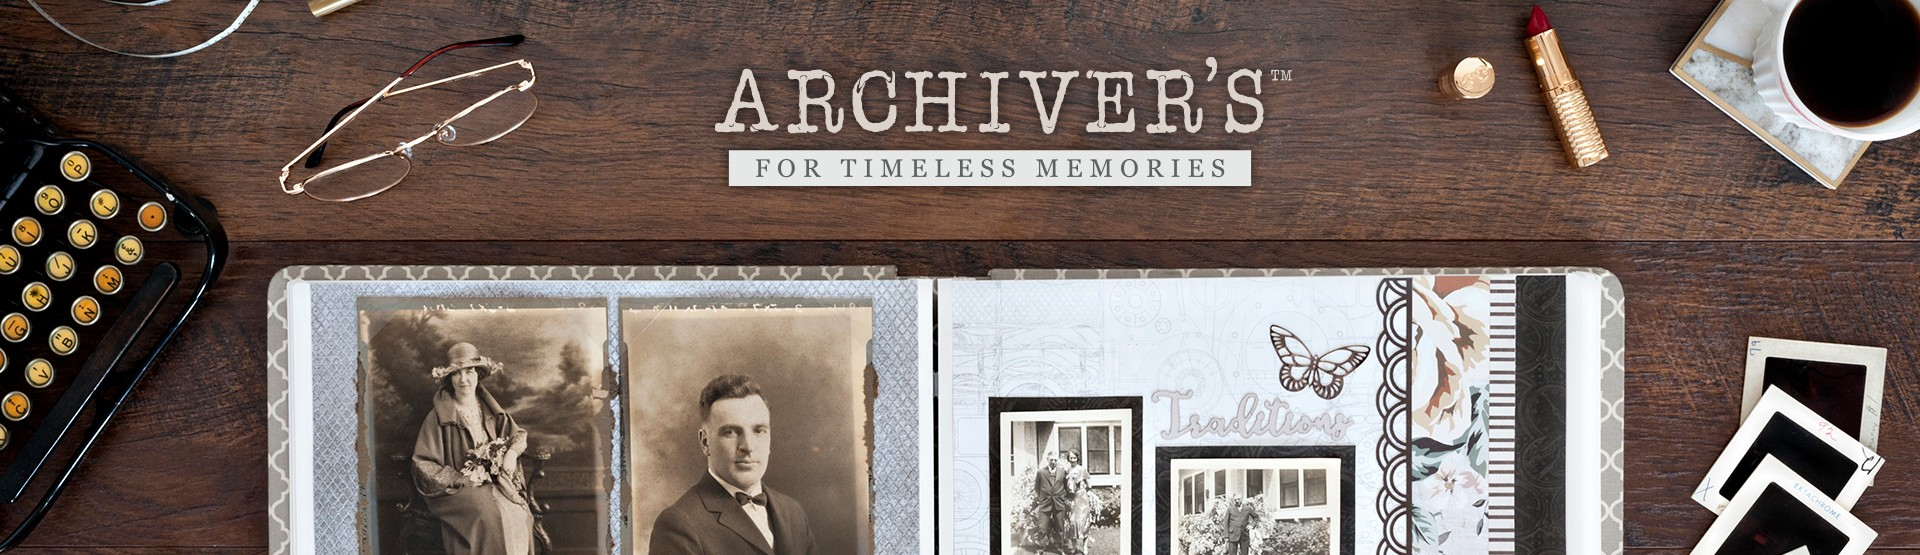 Heritage: Archiver's